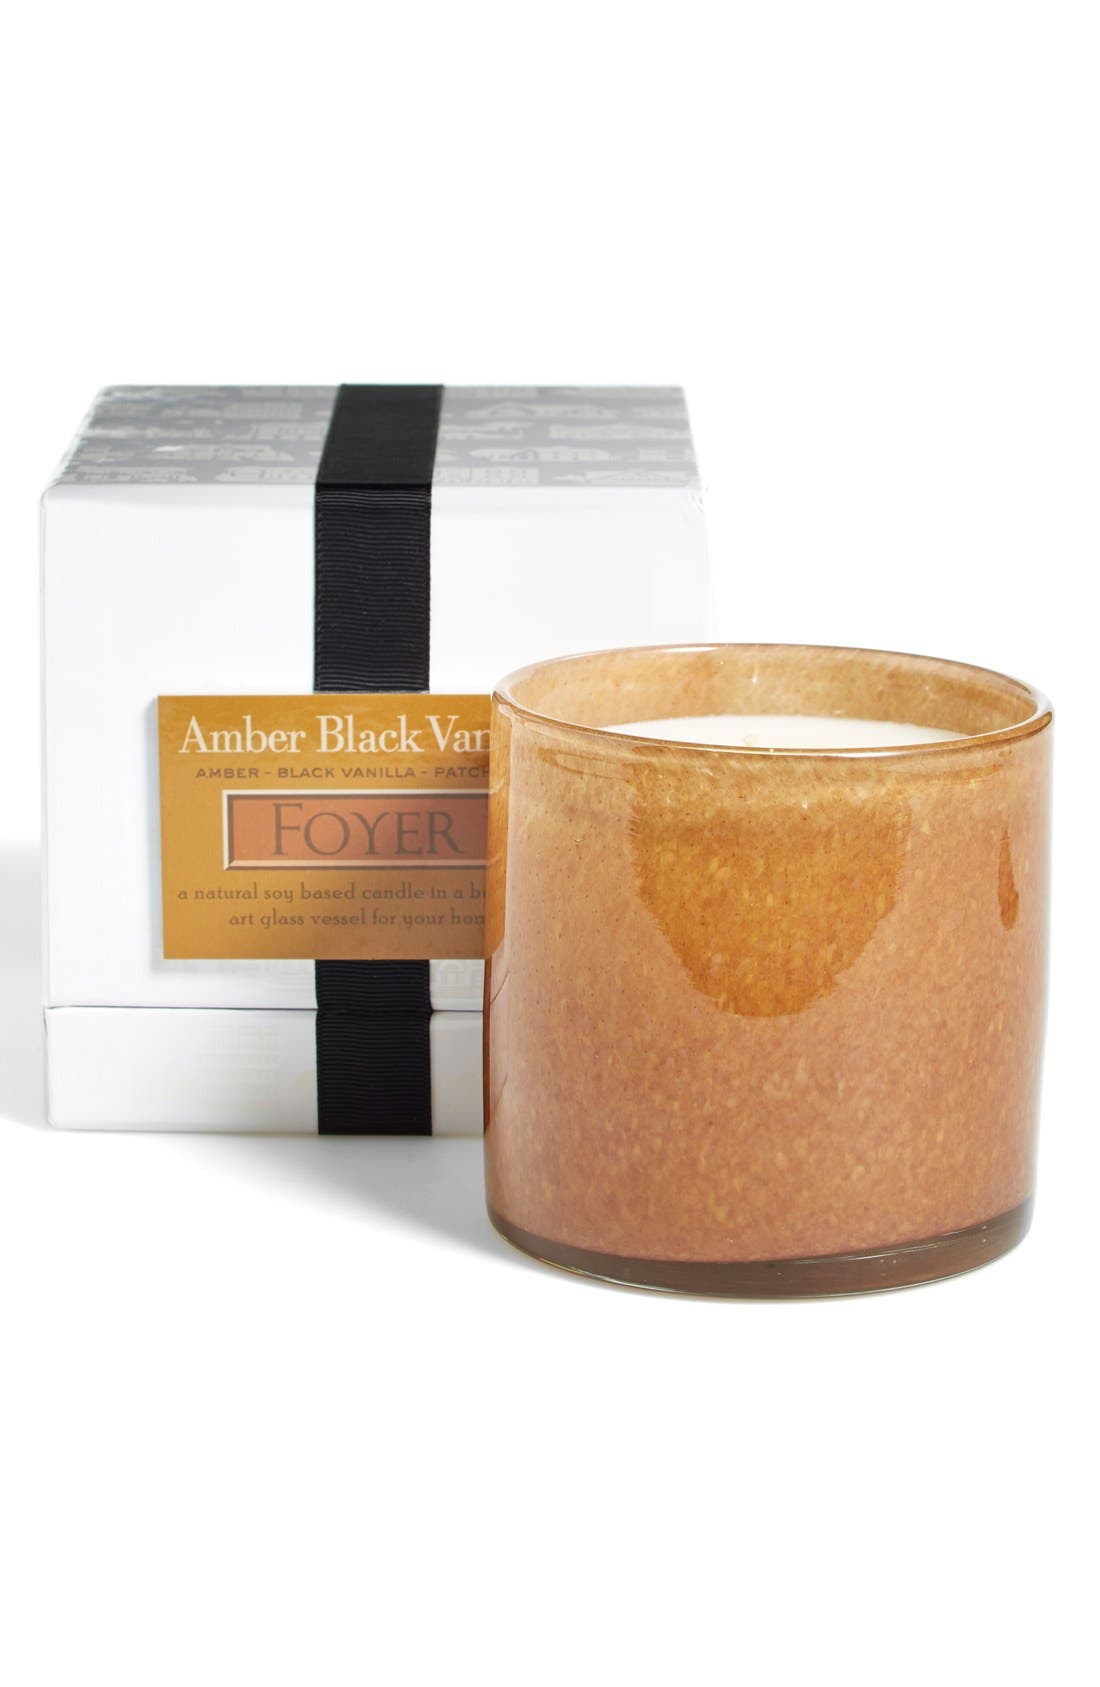 'Amber Black Vanilla - Foyer' Candle,                             Alternate thumbnail 2, color,                             No Color